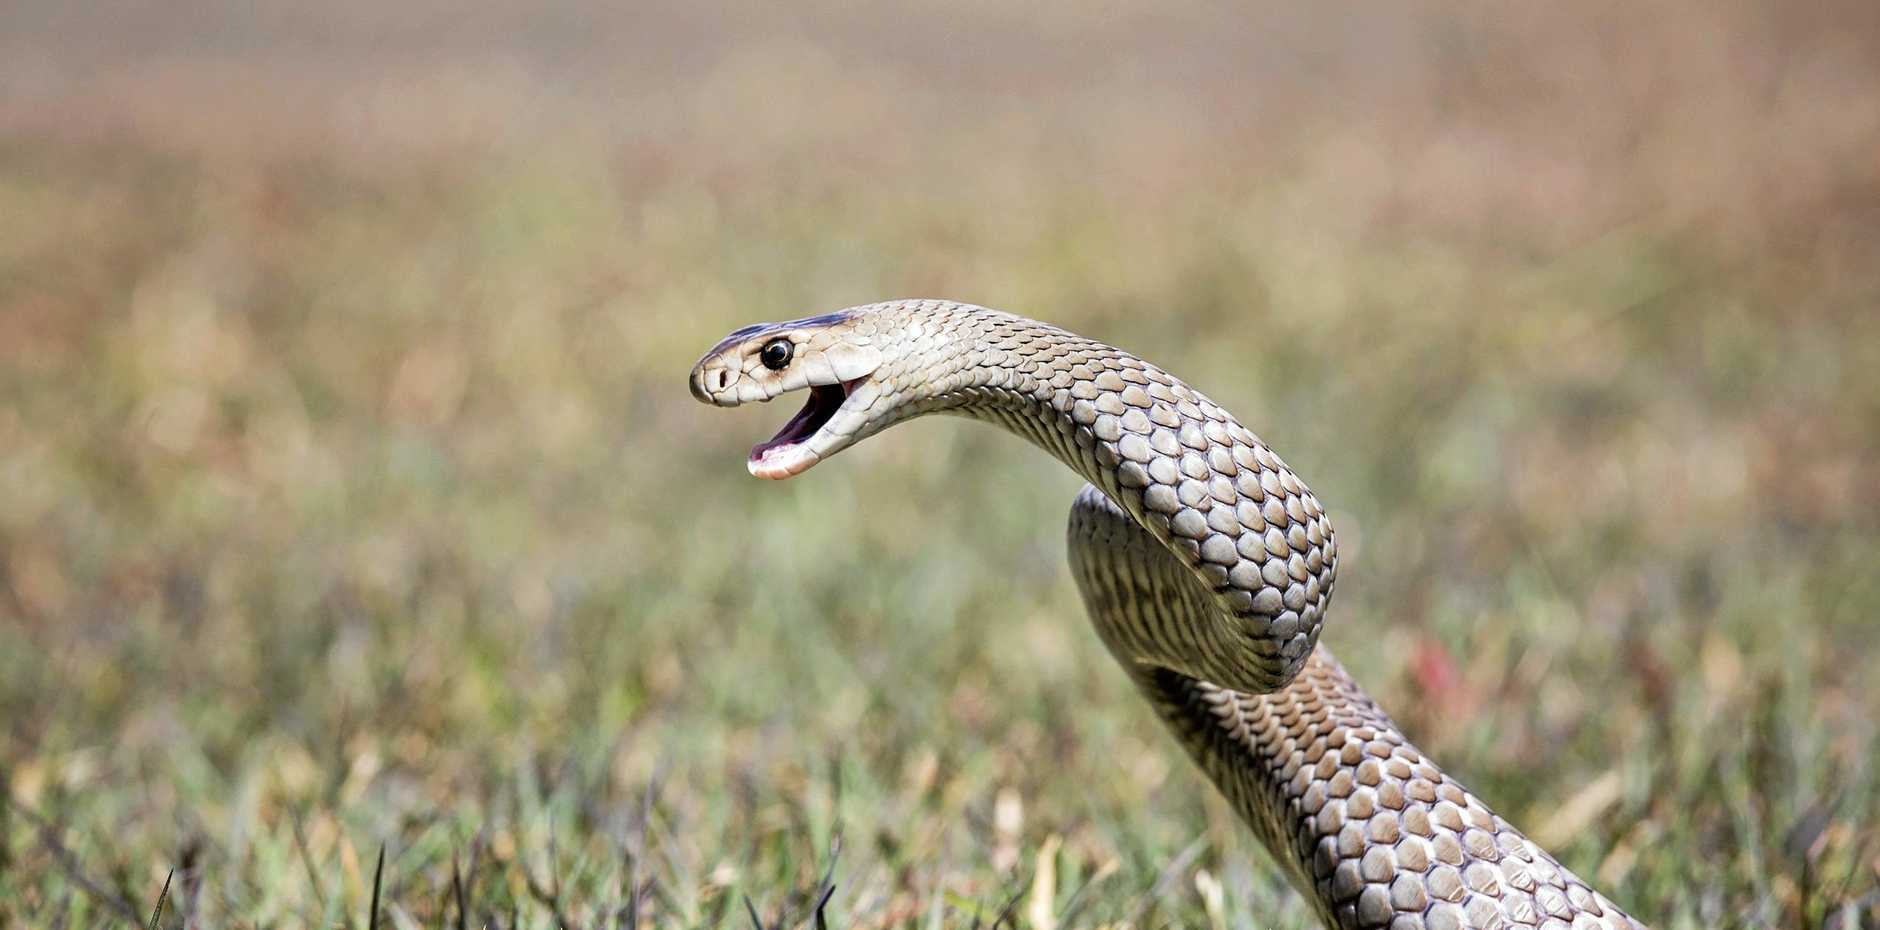 A woman in her 30s was bitten by a snake last night.